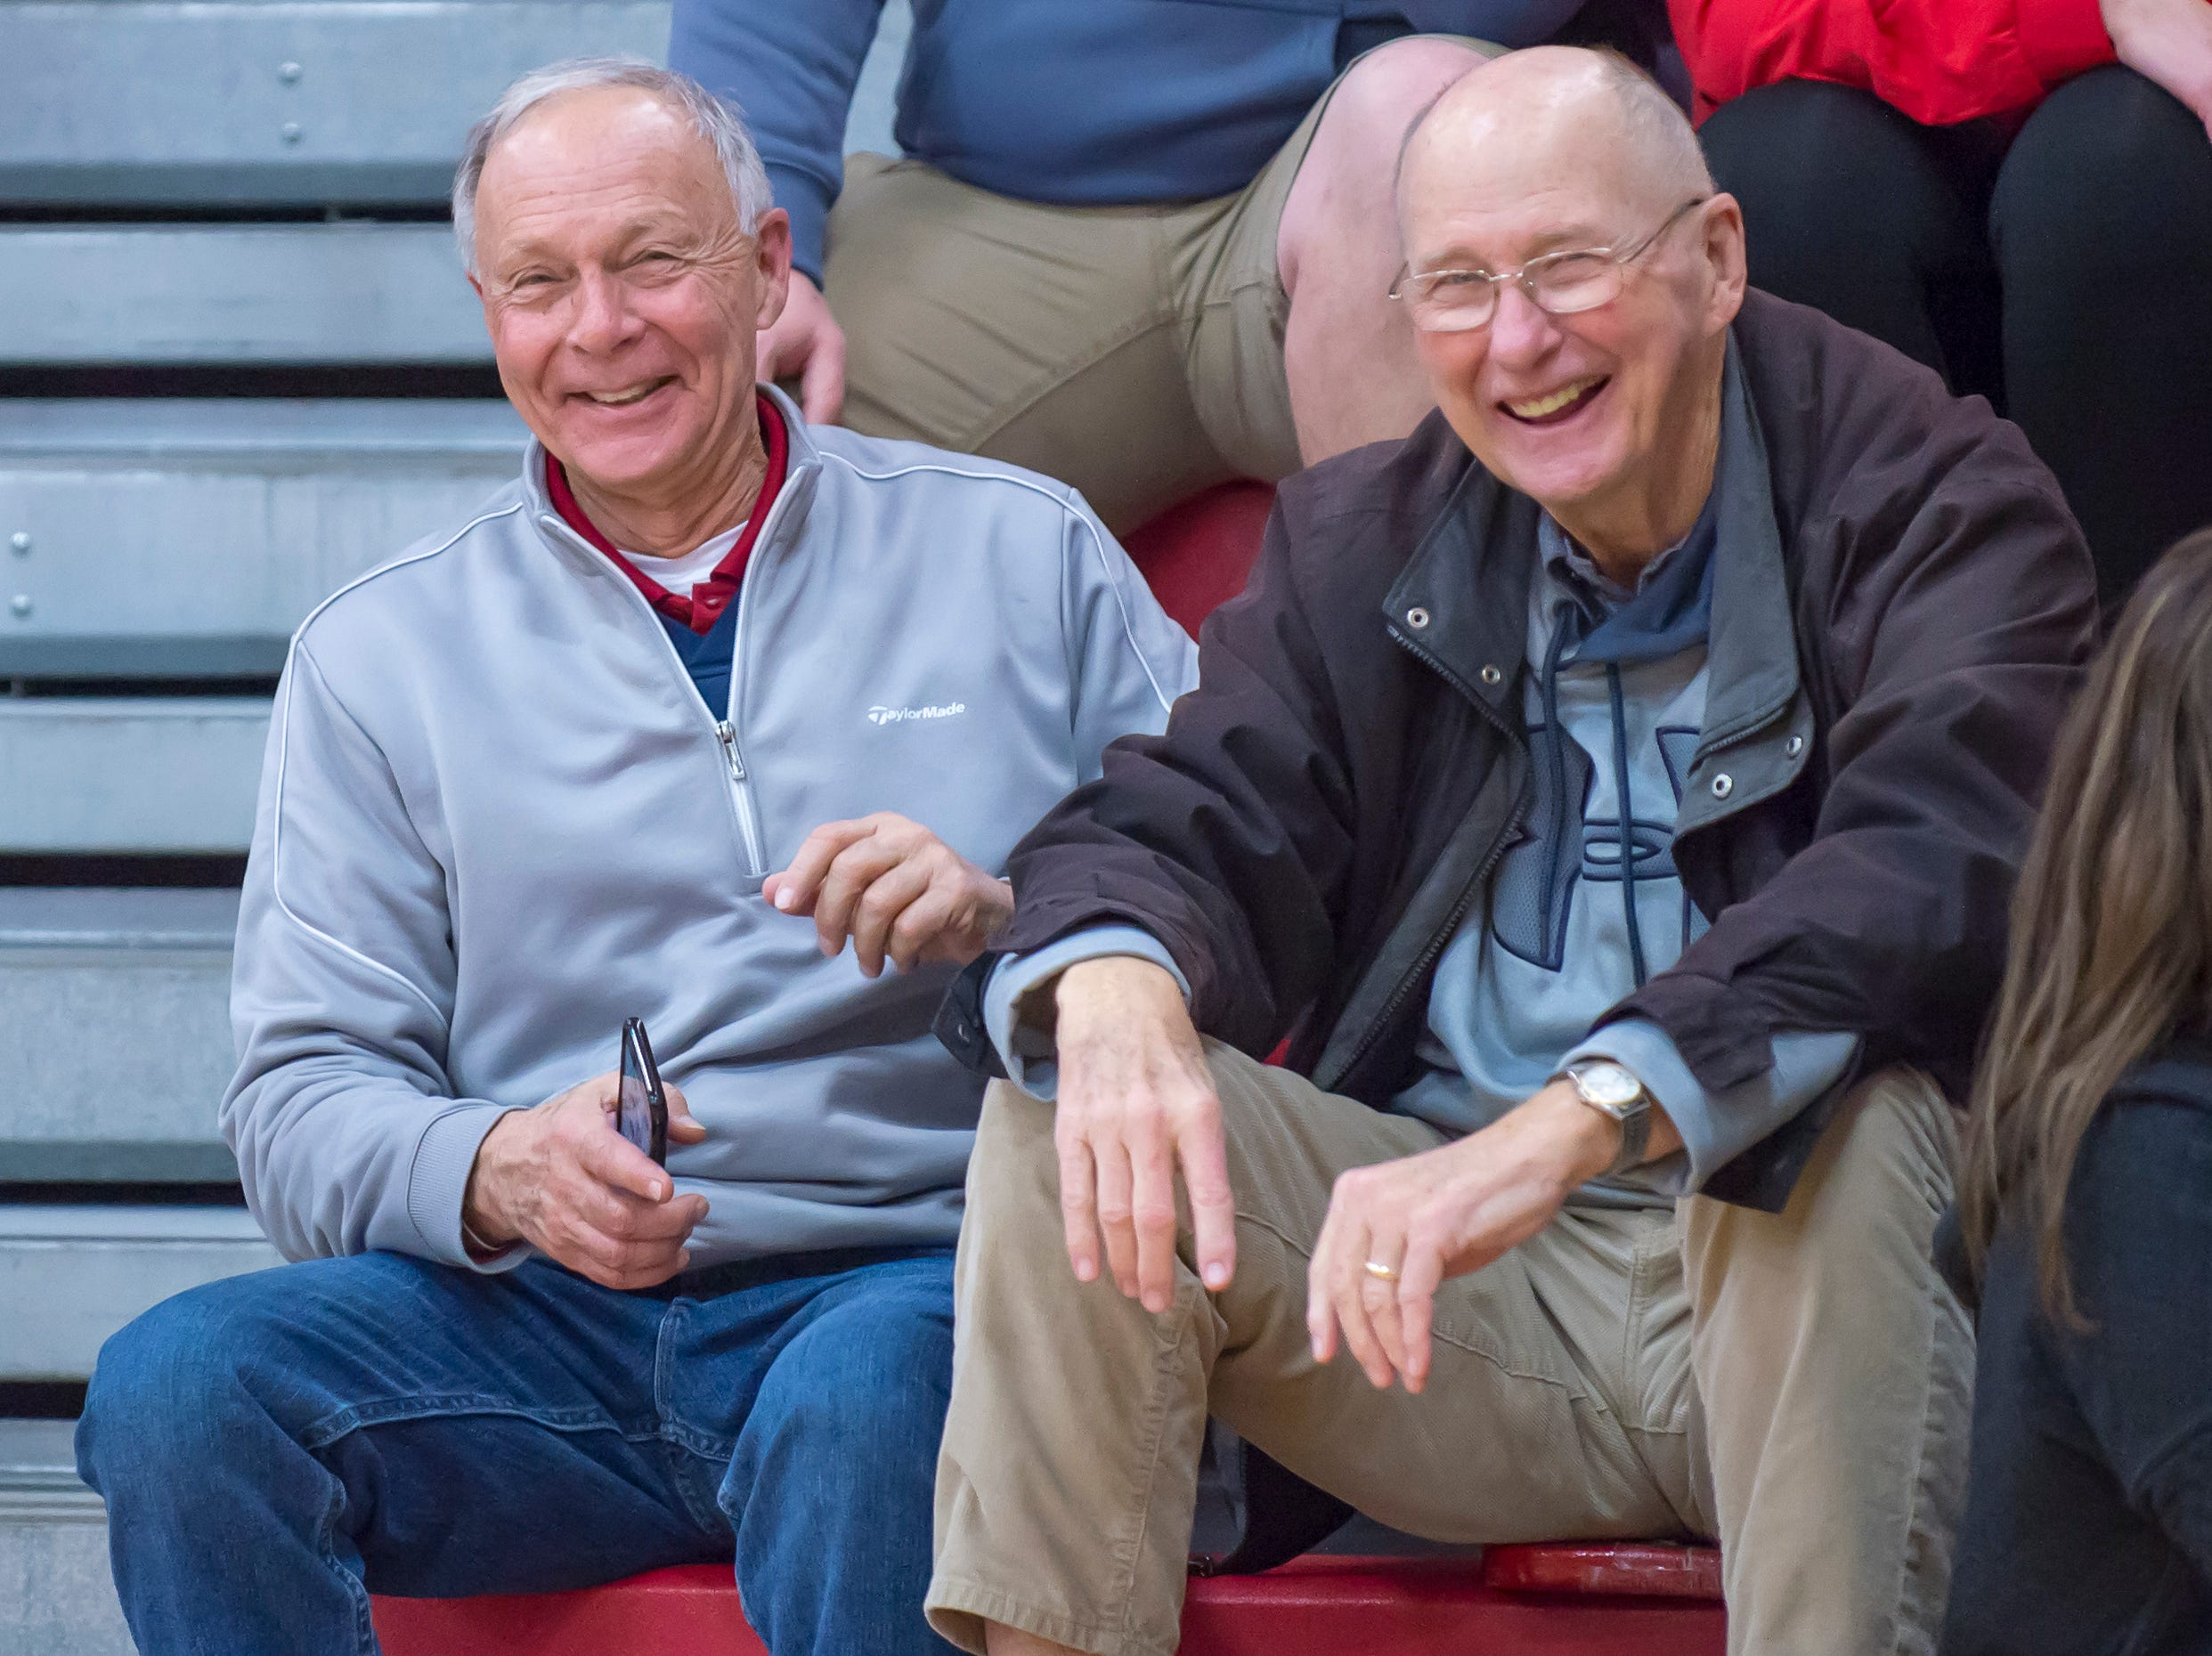 The 'veteran duo of Left Troyer and Rick Reeves enjoy the action from the Benton Central at West Lafayette basketball game on December 14, 2018